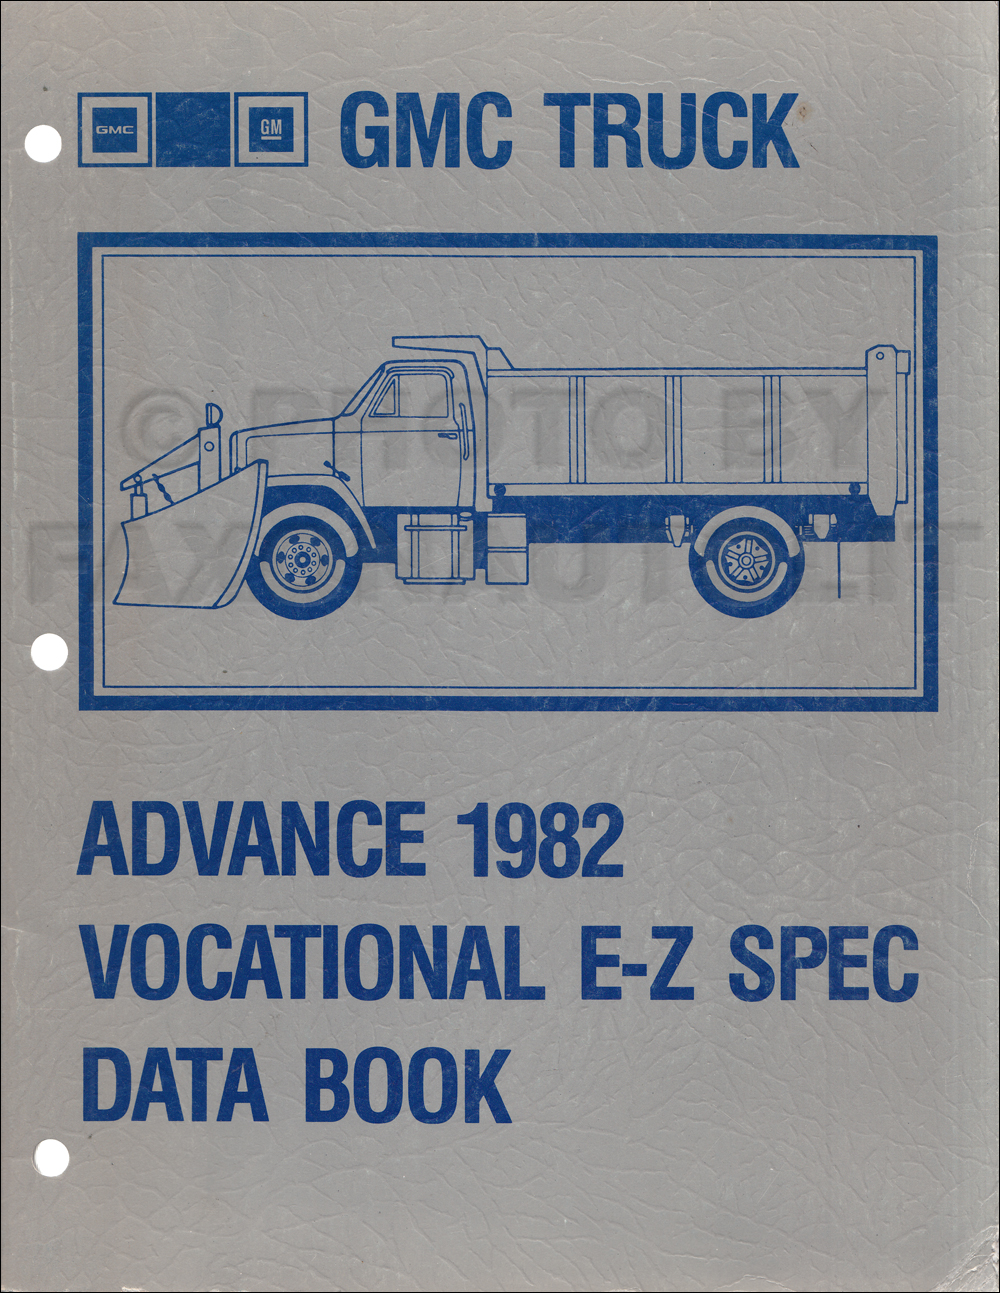 1982 GMC Truck Advance Vocational E-Z Specifications Data Book Original